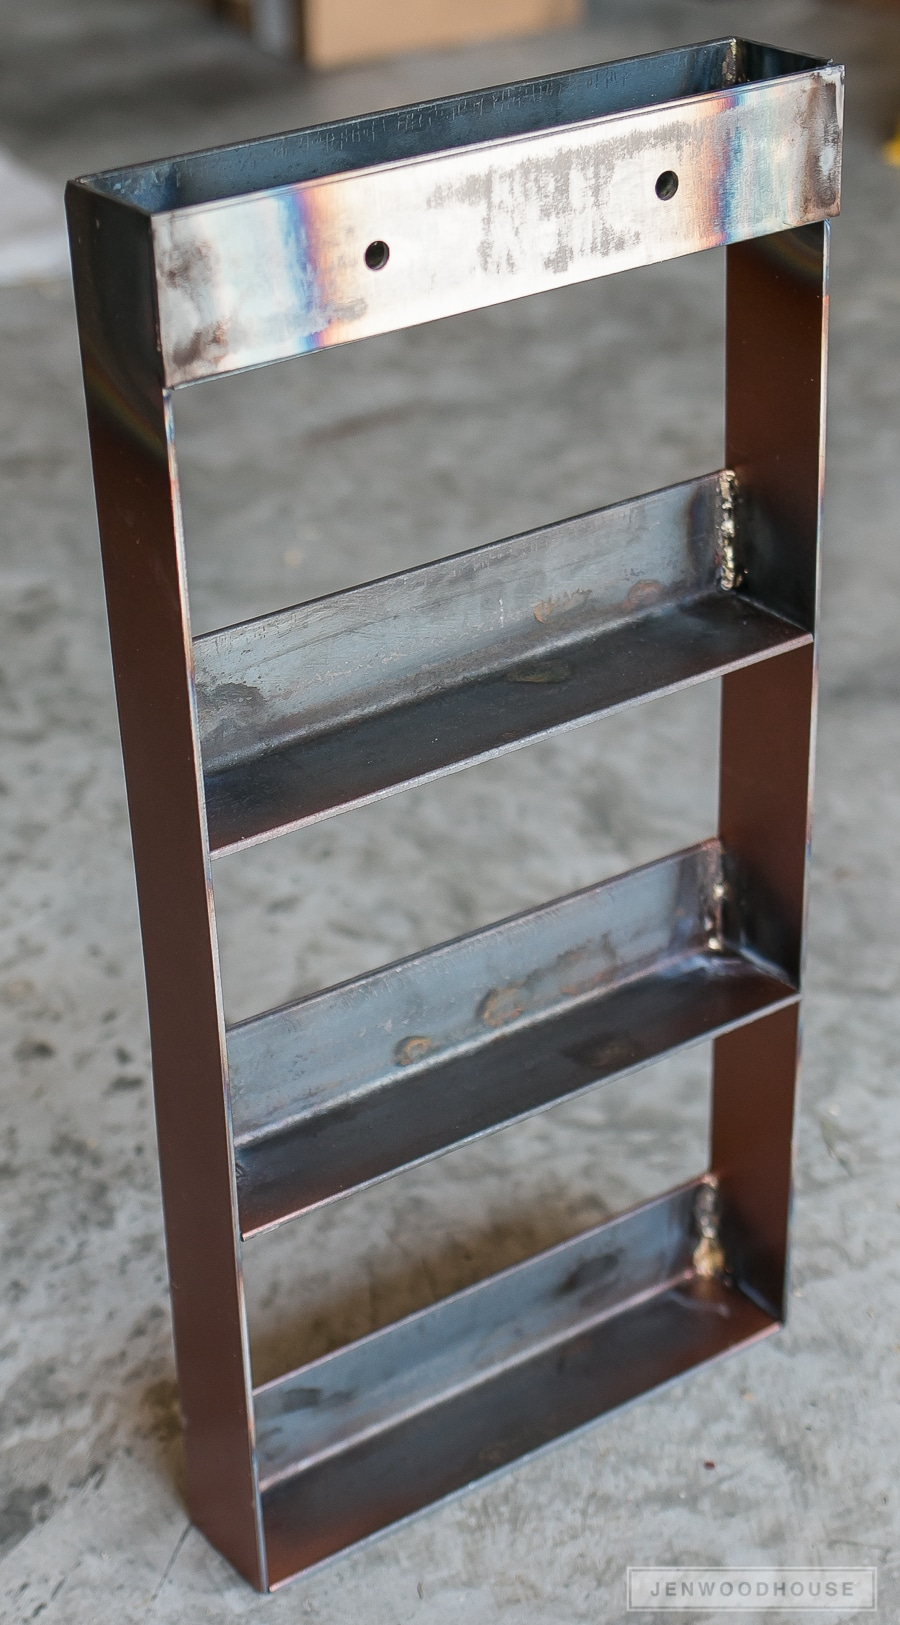 DIY Industrial Metal Spice Rack